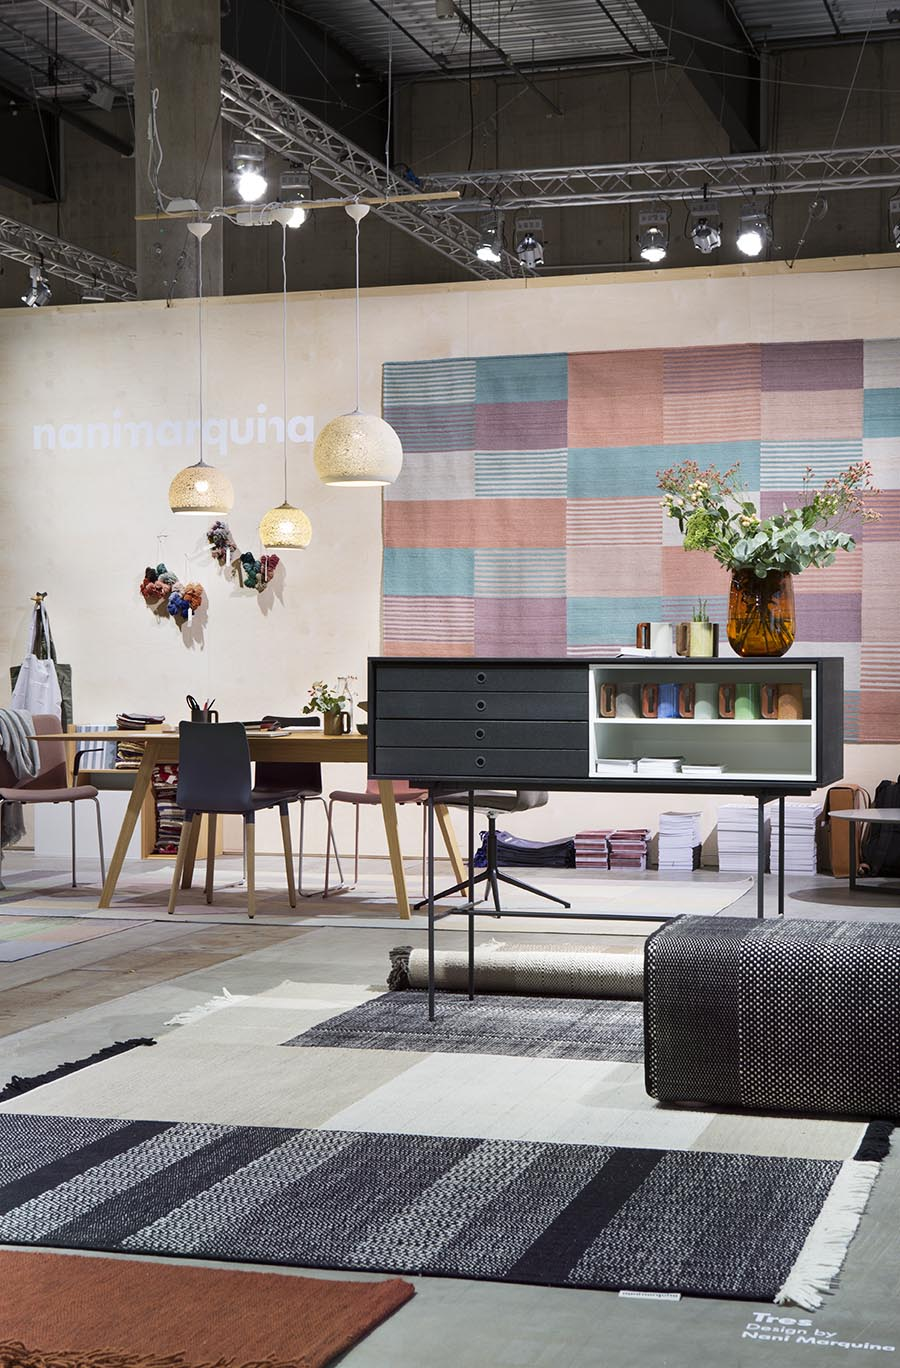 The Noes stand with a selection of Spanish design represented - Treku modular furniture, ceramic mugs by Matimañana, terracotta Sponge Up lamps by Pott and rugs from Nanimarquina.